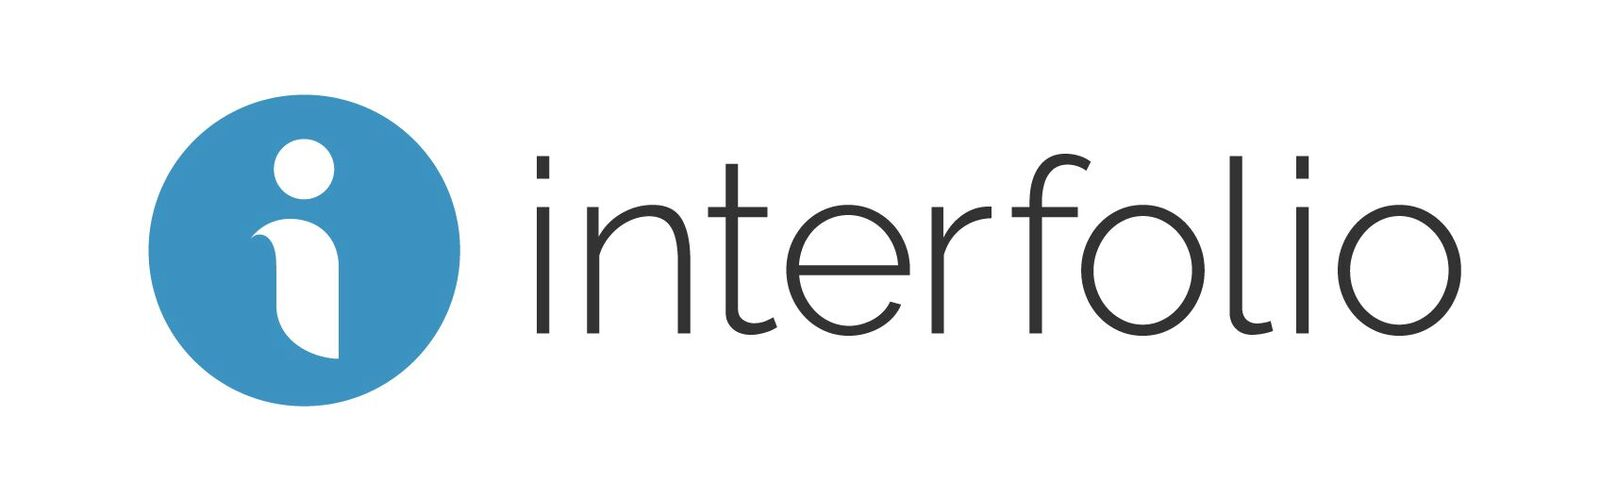 Interfolio logo